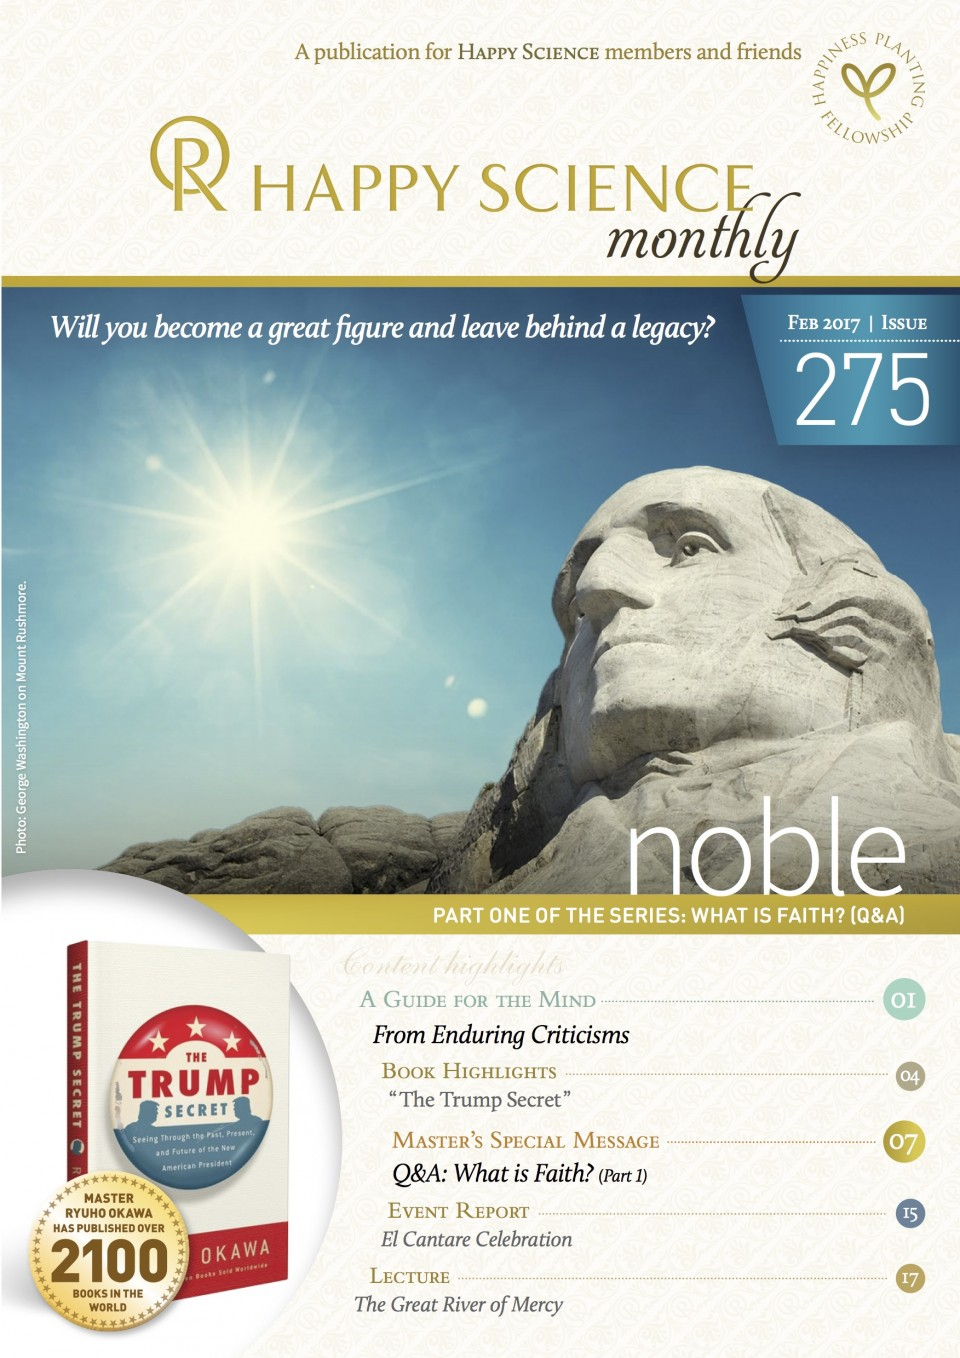 HAPPY SCIENCE Monthly 275 is released!